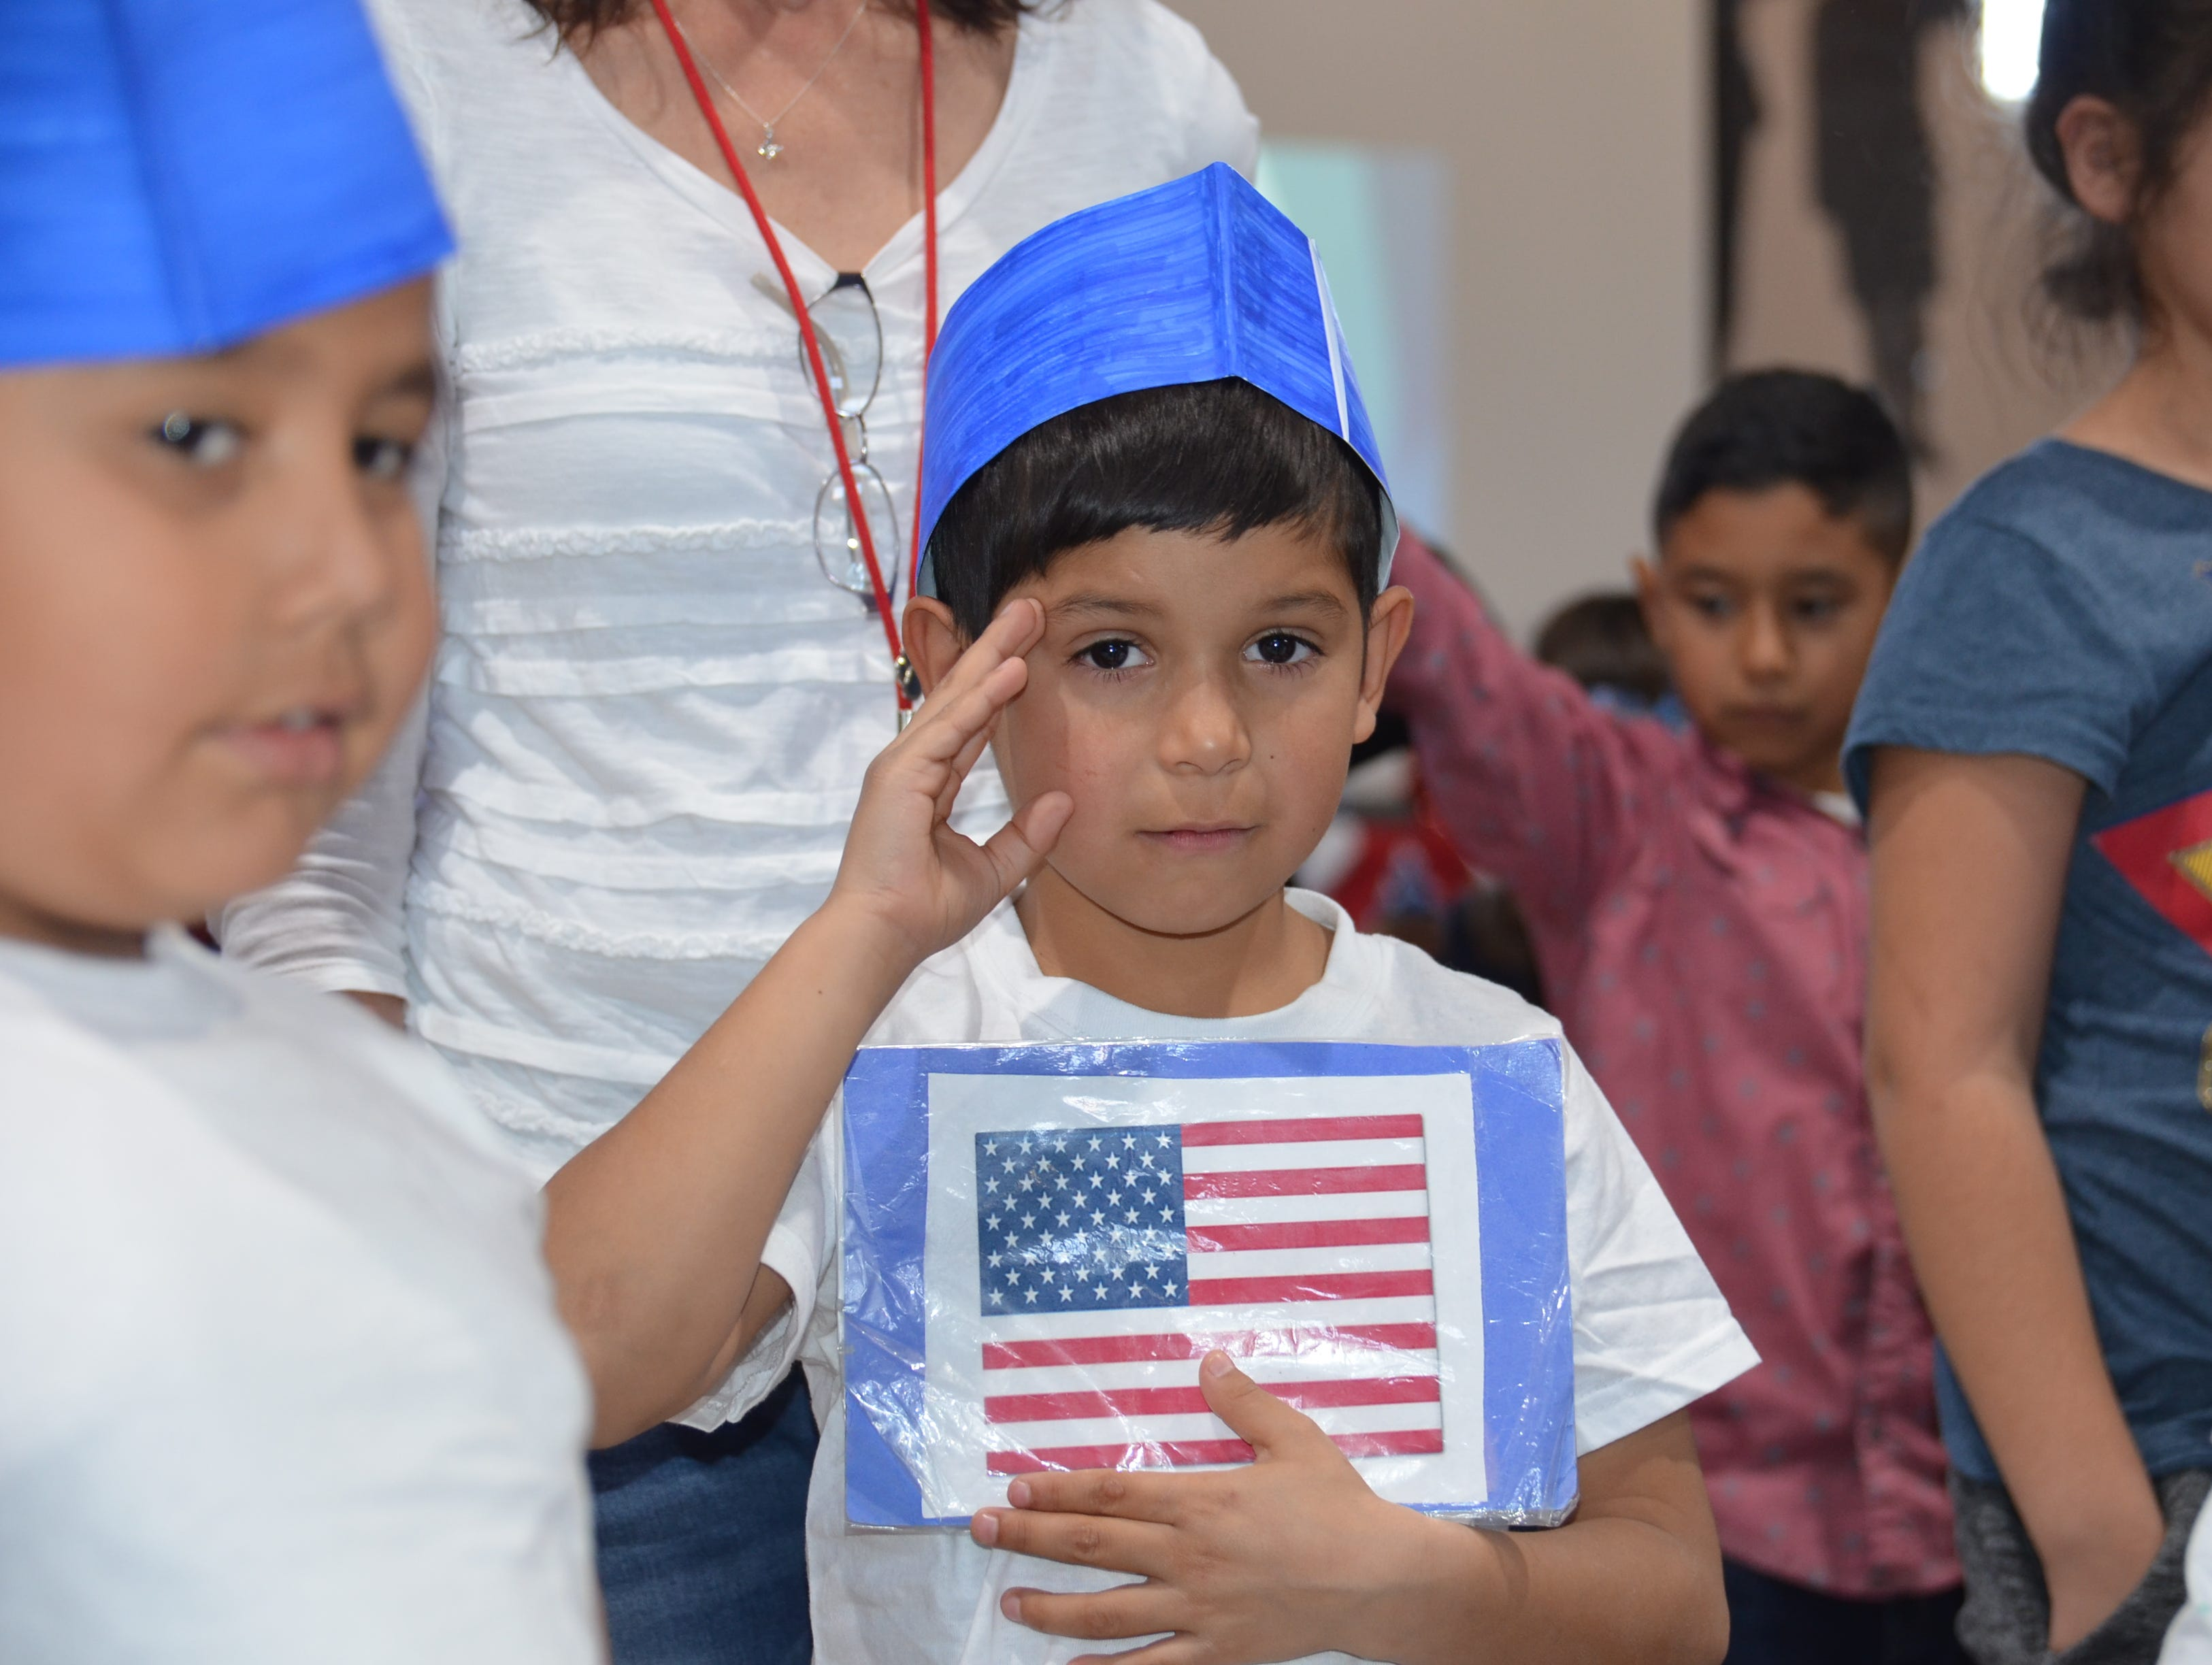 Sebastian Amaya, 6, of Ms. Nivea Aguirre's first grade class give the salute.